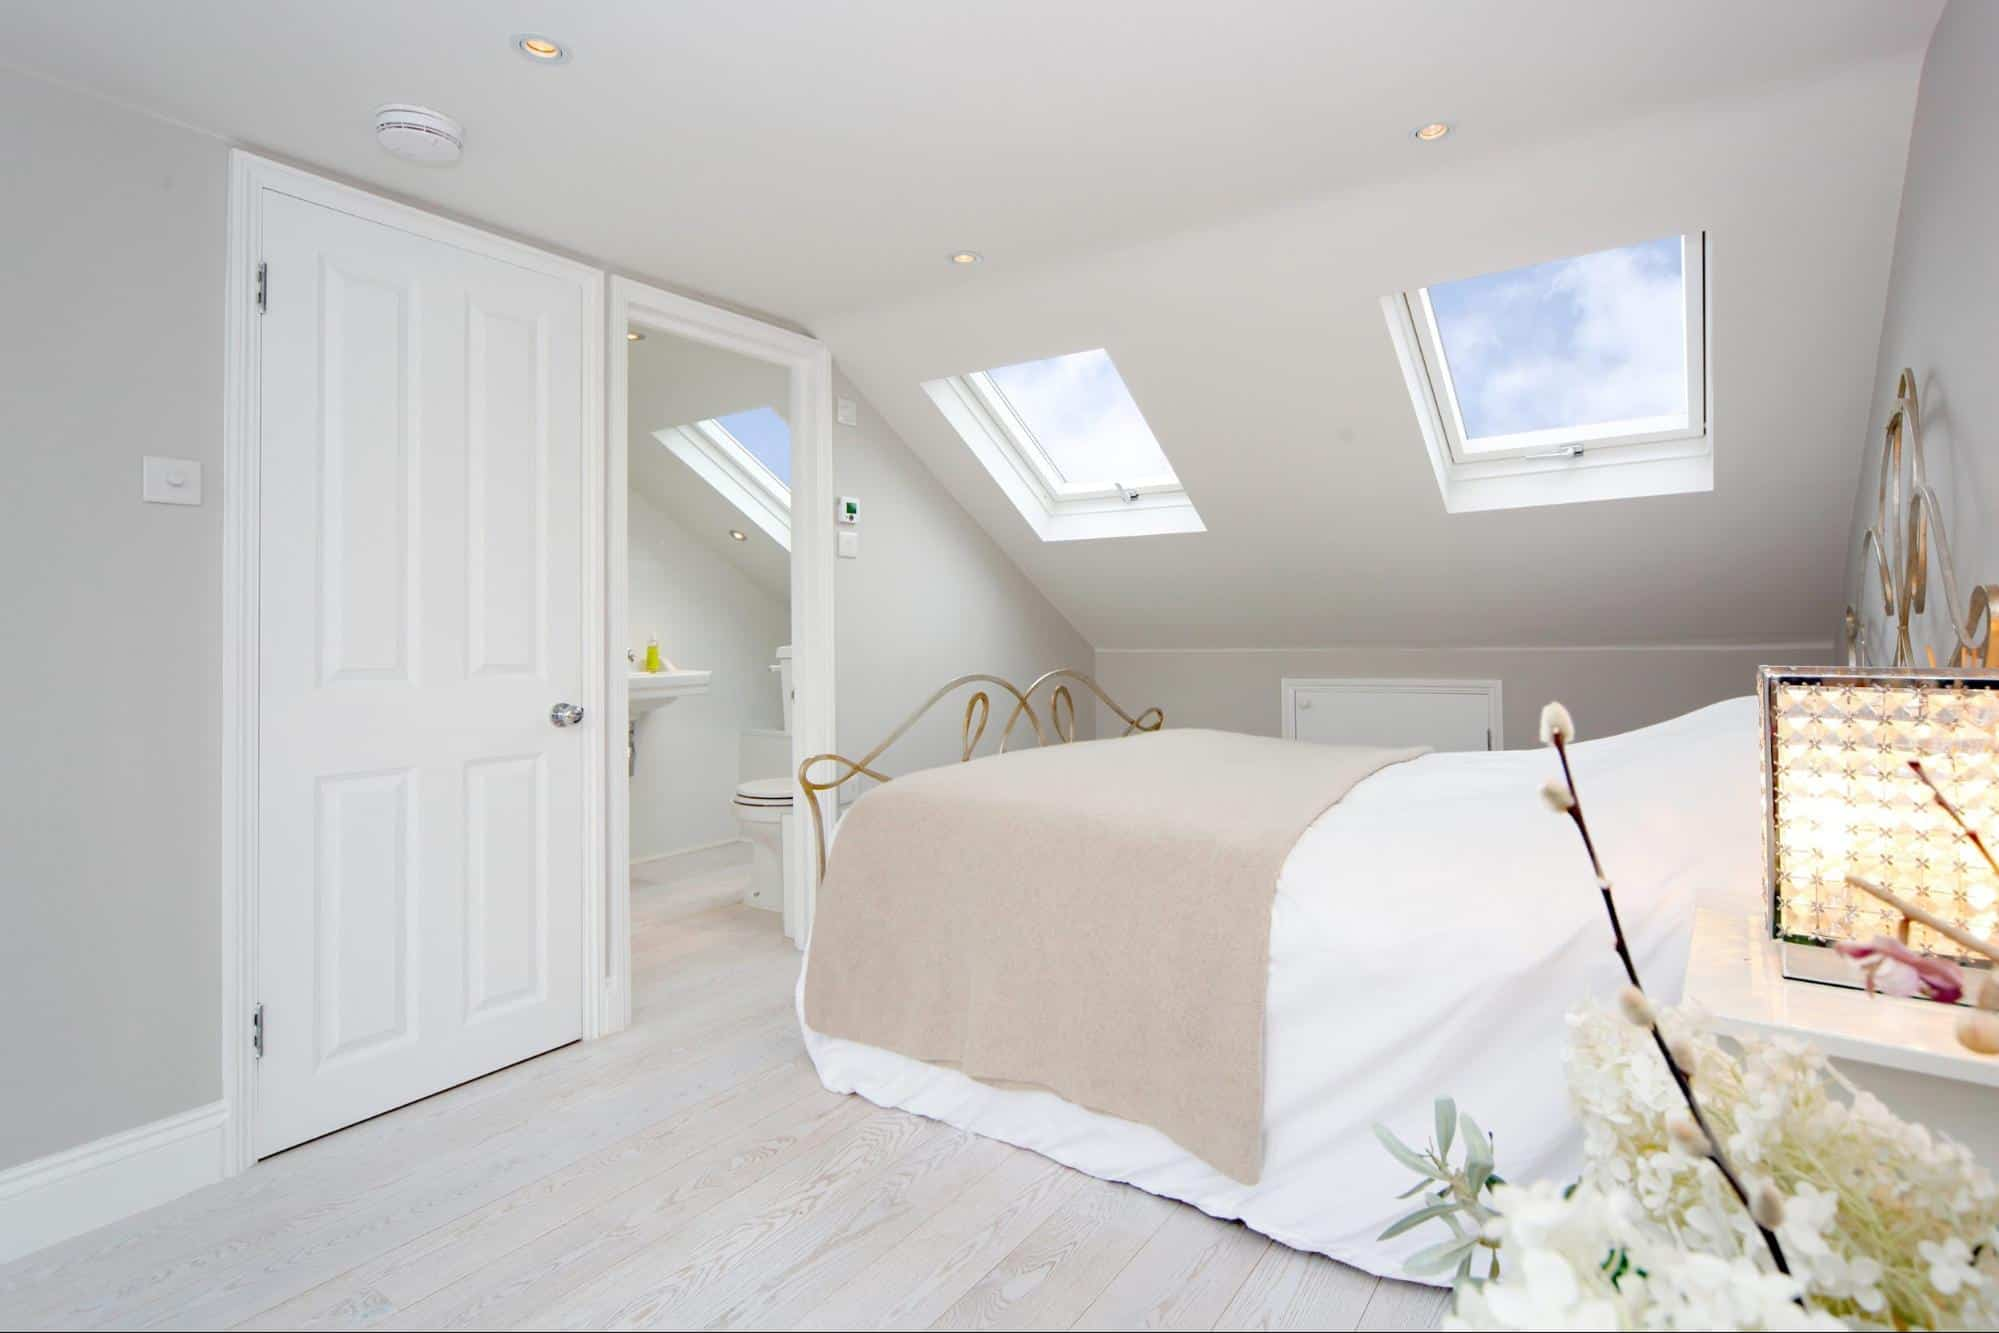 Our guide to planning permission for loft conversions